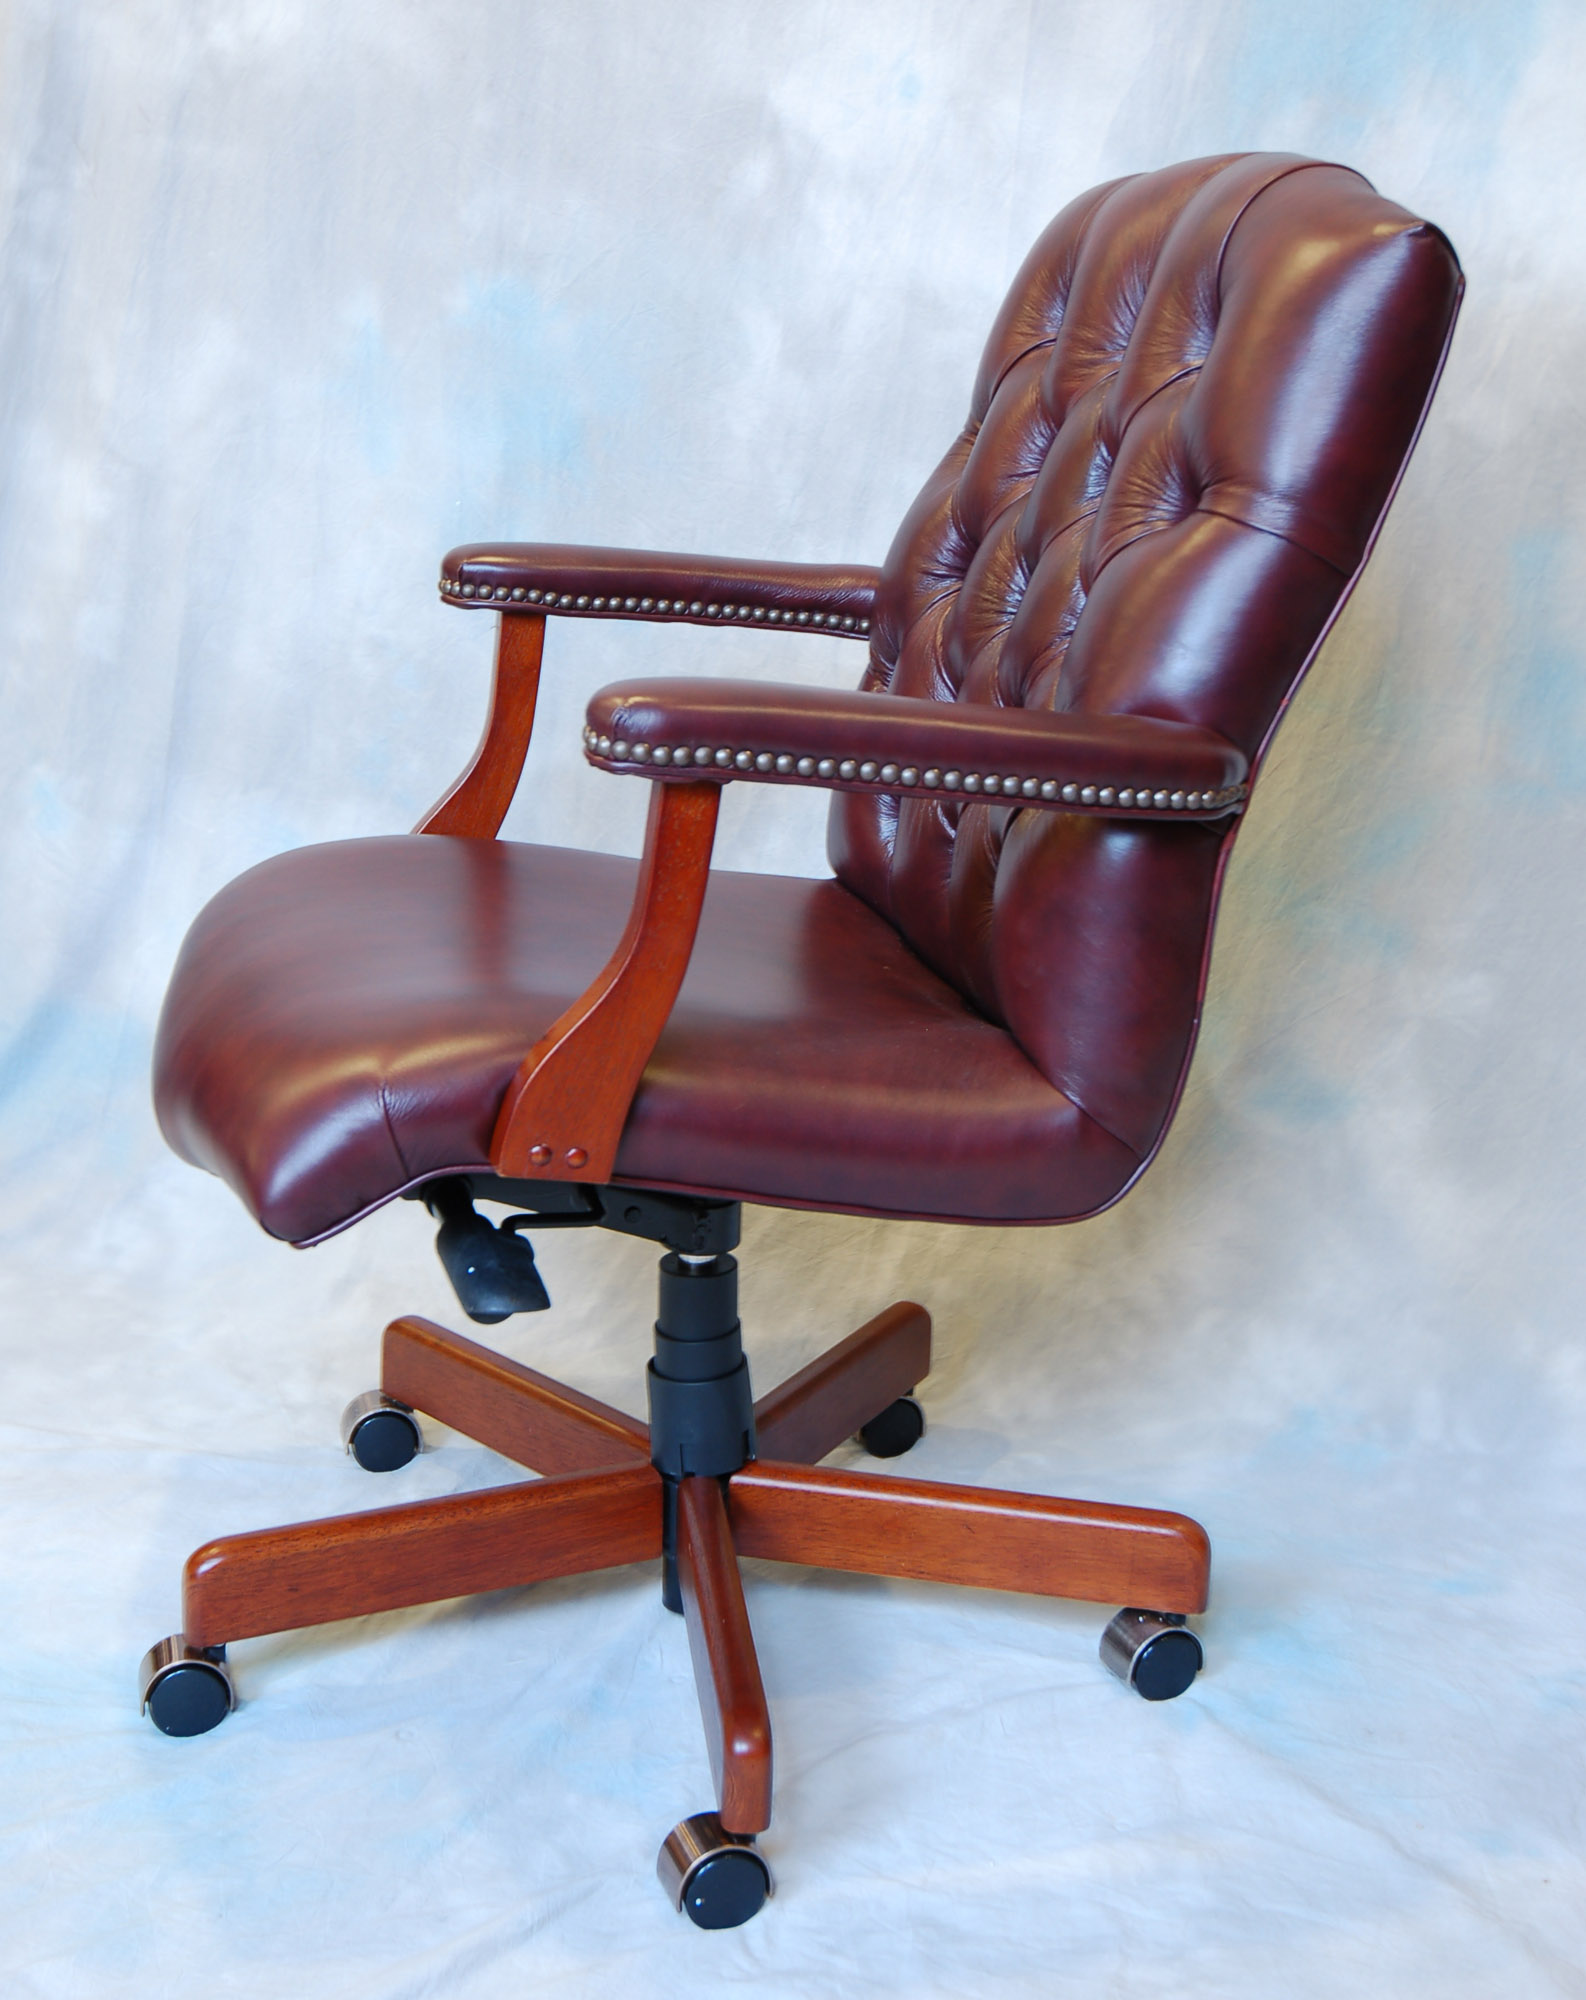 genuine leather chair best office for lower back pain large executive desk ebay